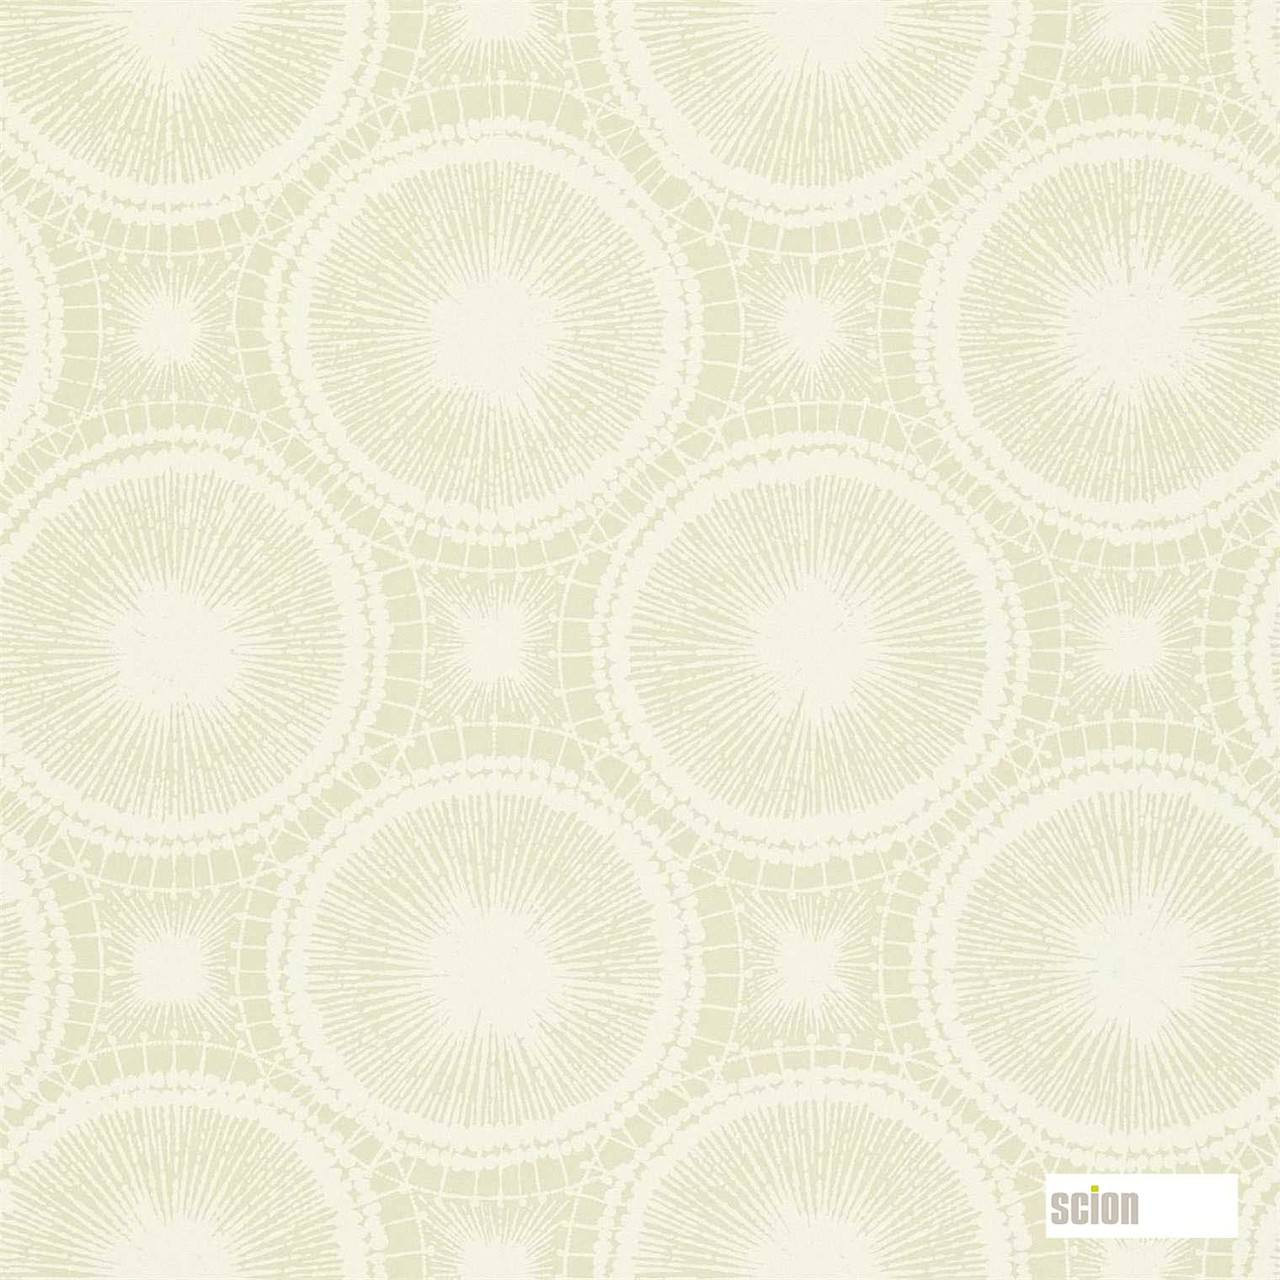 Scion Tree Circles 110250  | Wallpaper, Wallcovering - White, Geometric, Midcentury, Commercial Use, Domestic Use, White, Circles